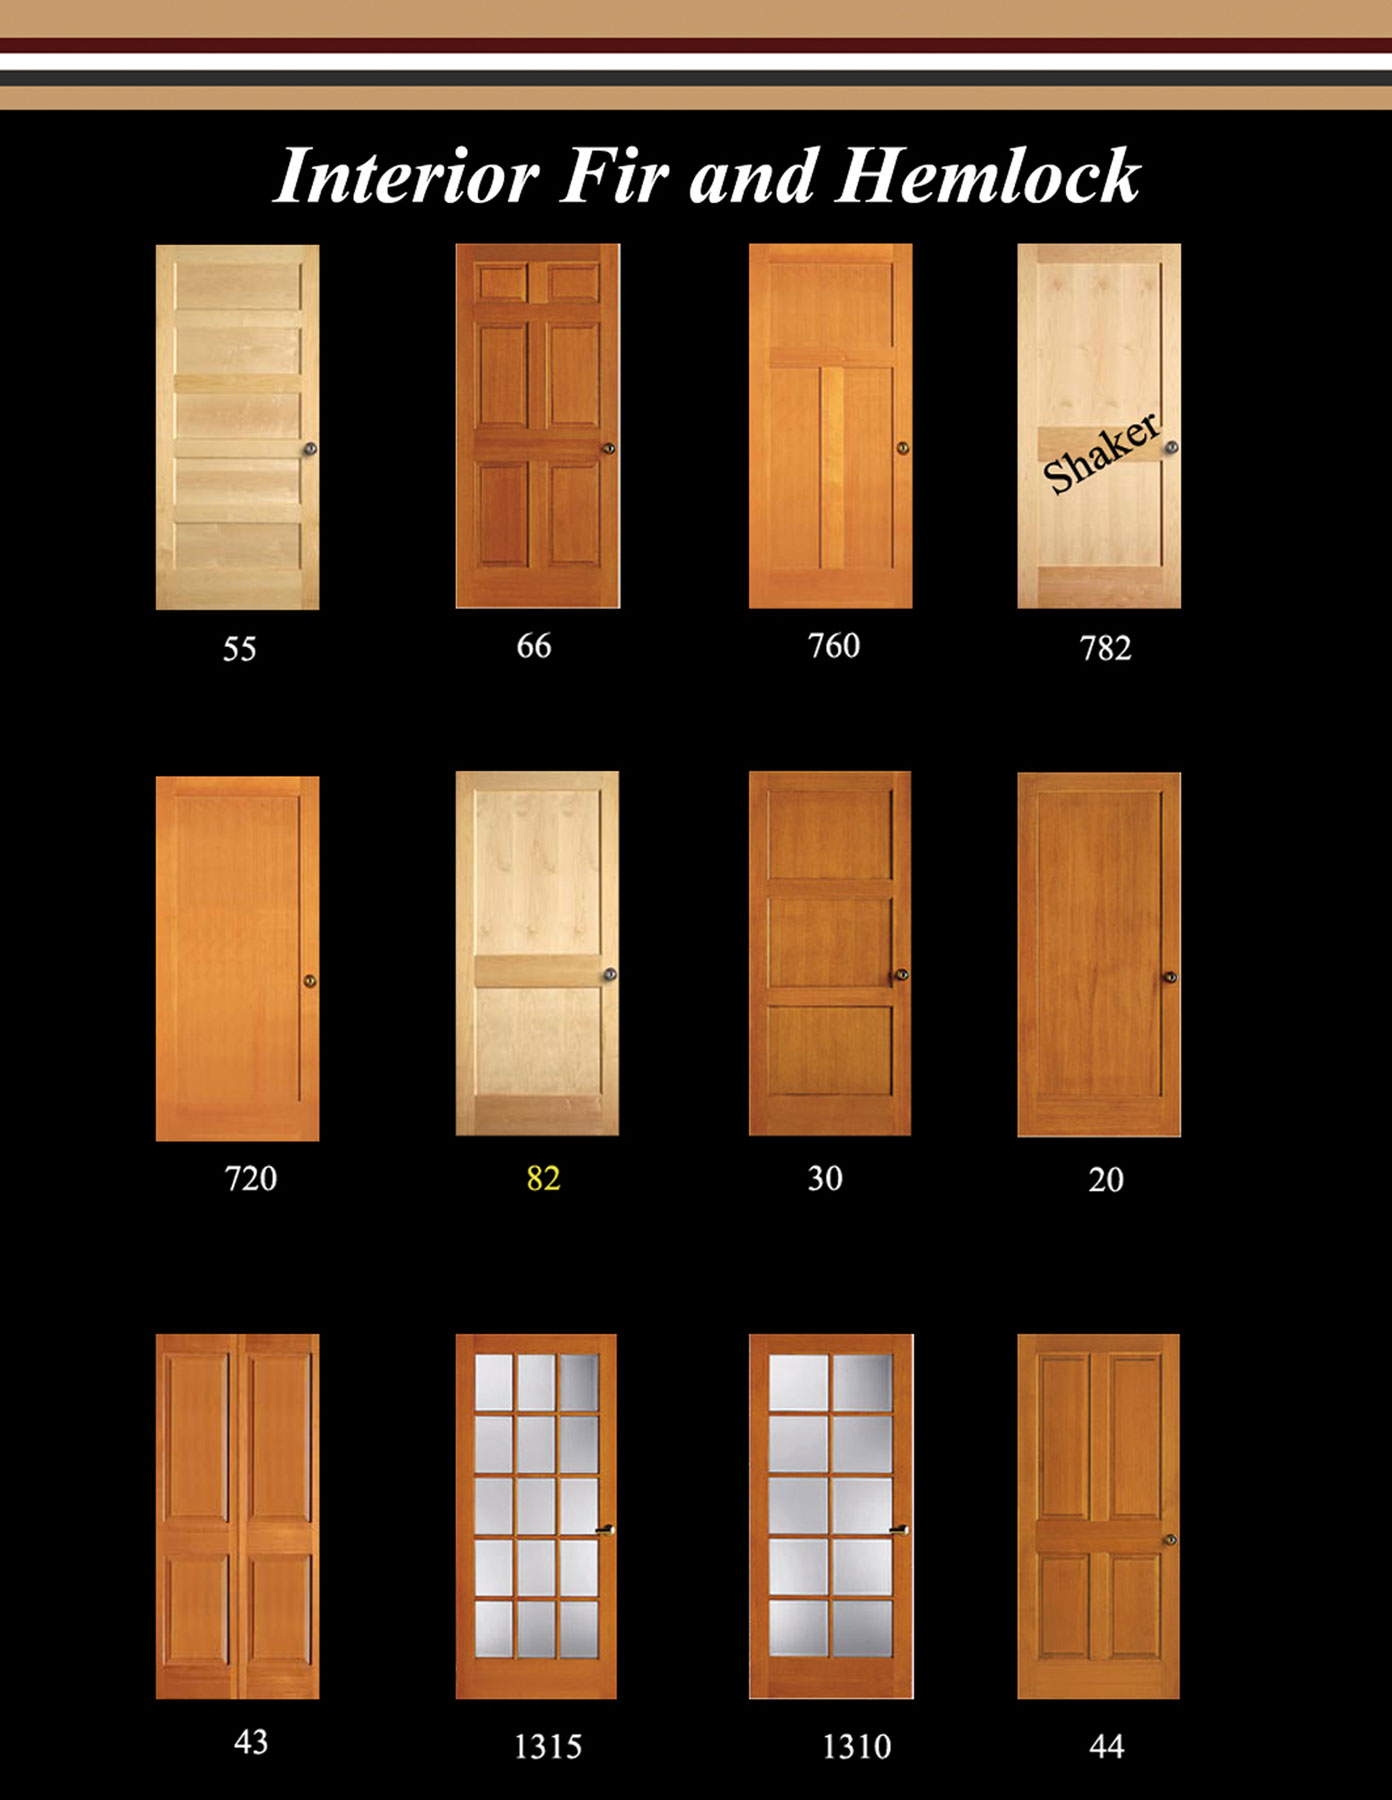 Cascade Door u0026 Trim can offer just the right door for your project in a variety of styles species and grades. Stain grade or paint grade we can supply what ...  sc 1 st  Cascade Door and Trim & Interior Doors